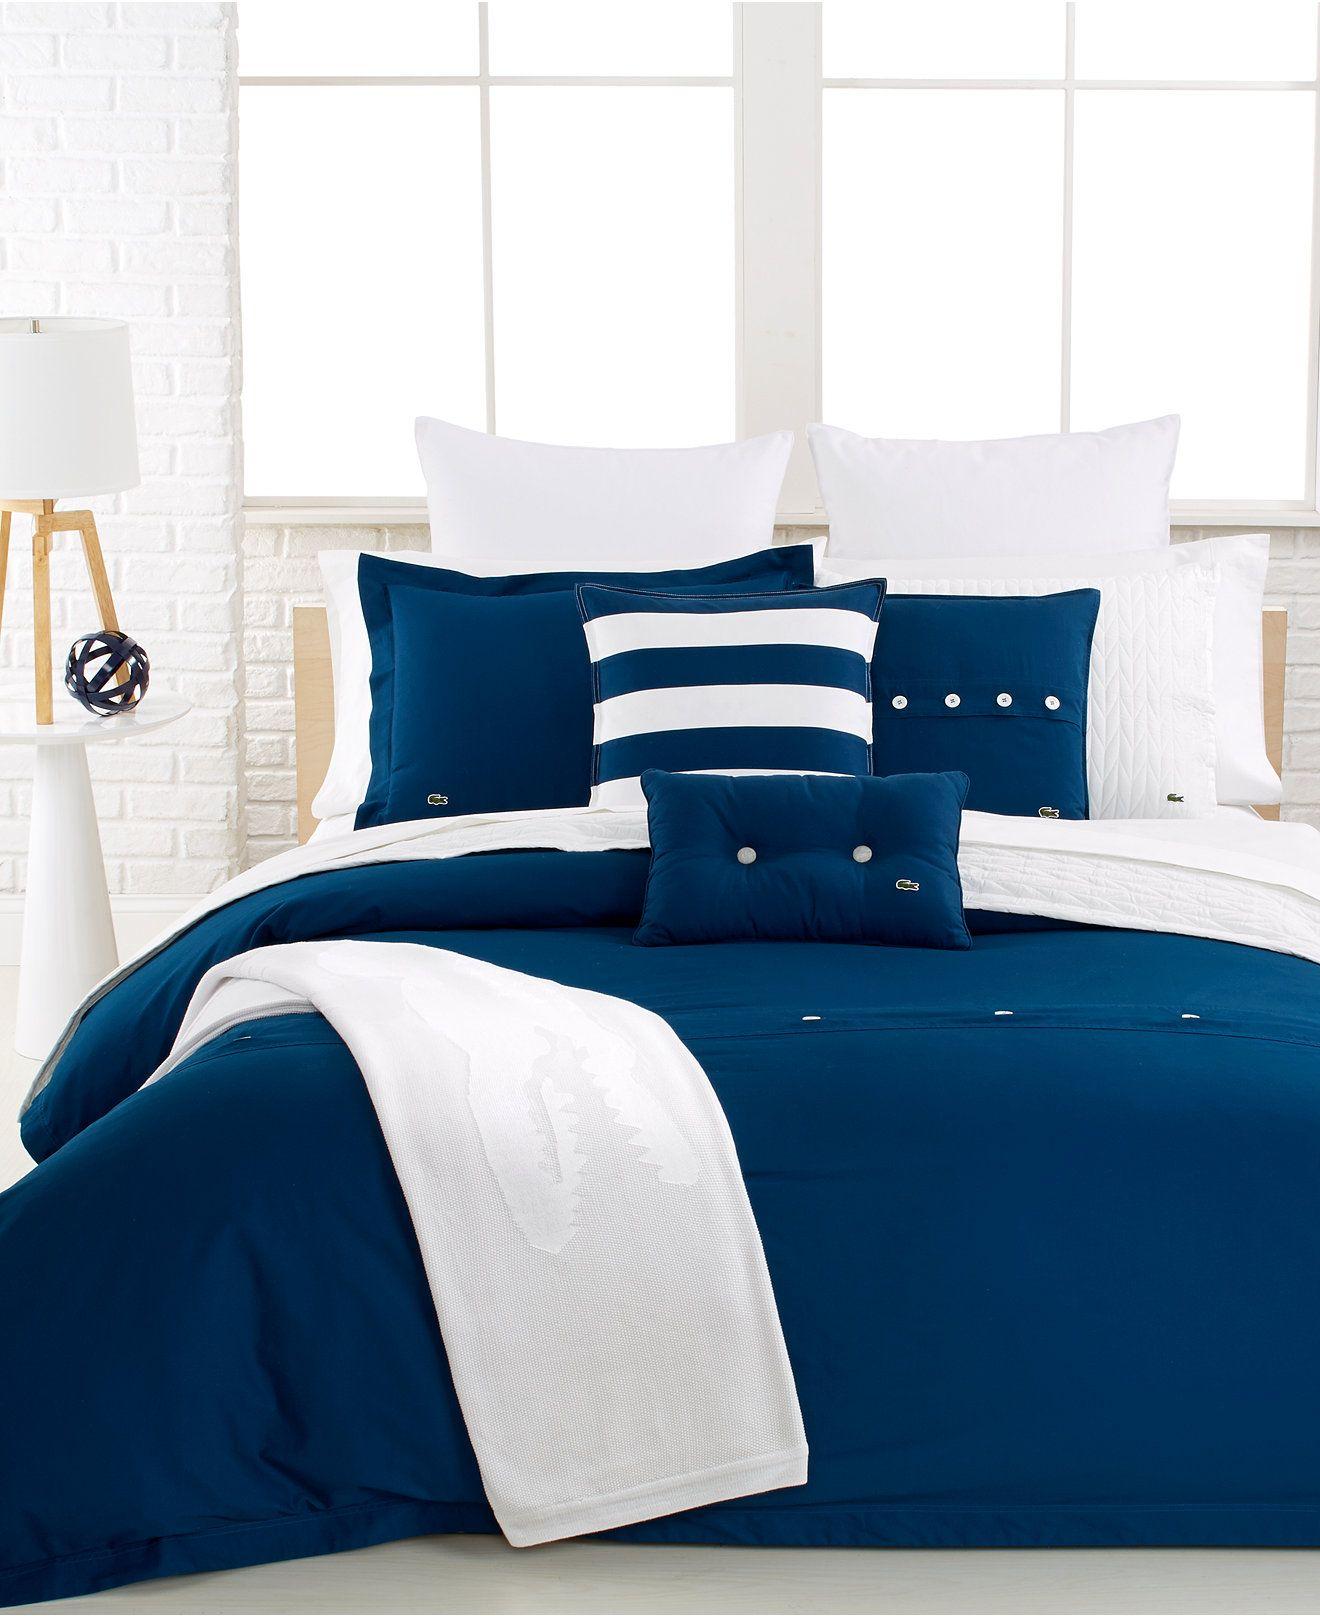 home set prepare decor incredible bed amazing property arizona bedroom awesome lacoste best cardinals towels cover for duvet ideas elegant